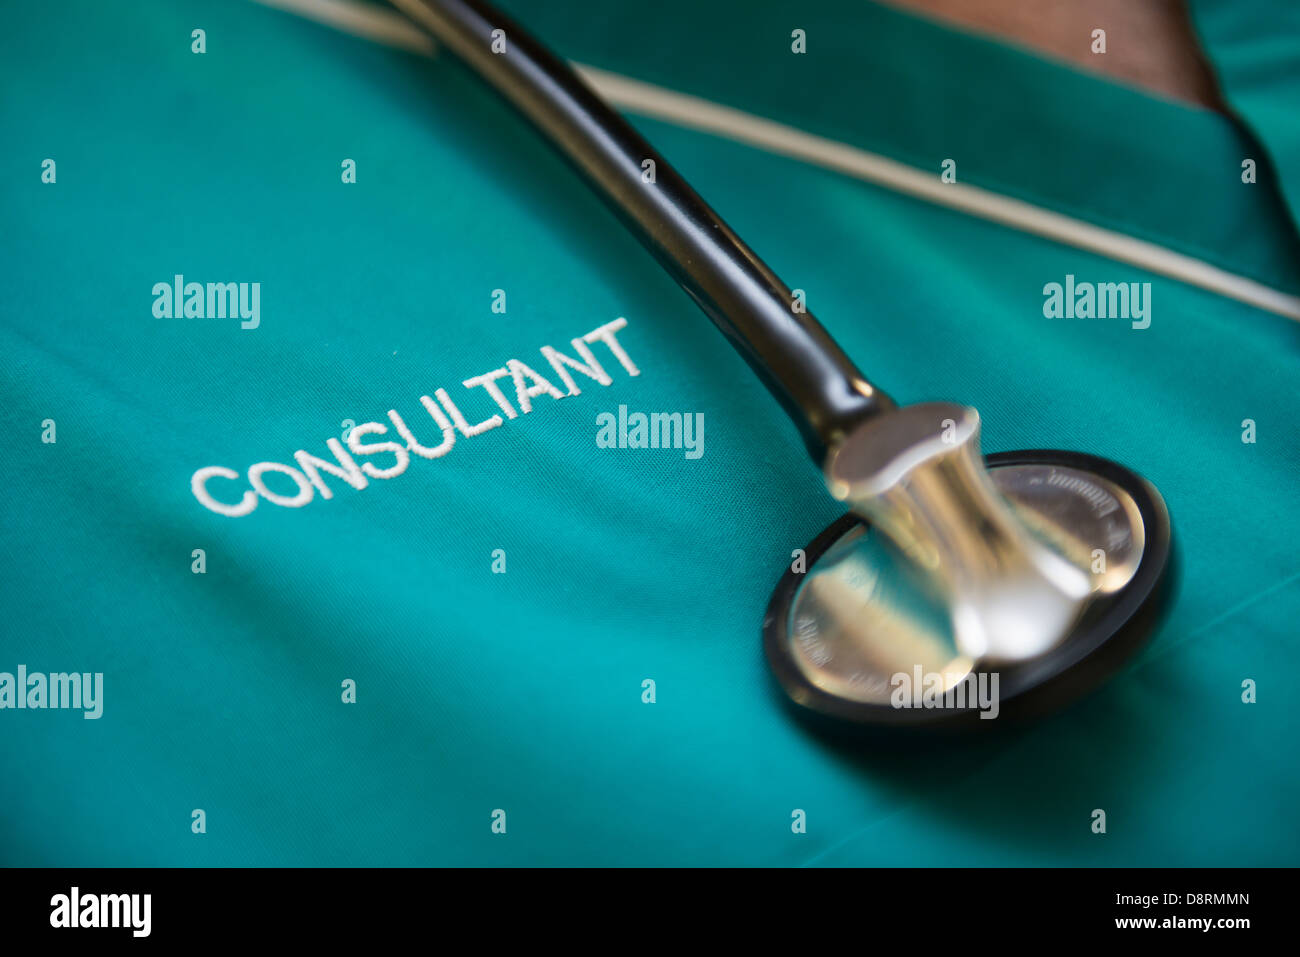 A consultant in a hospital. - Stock Image